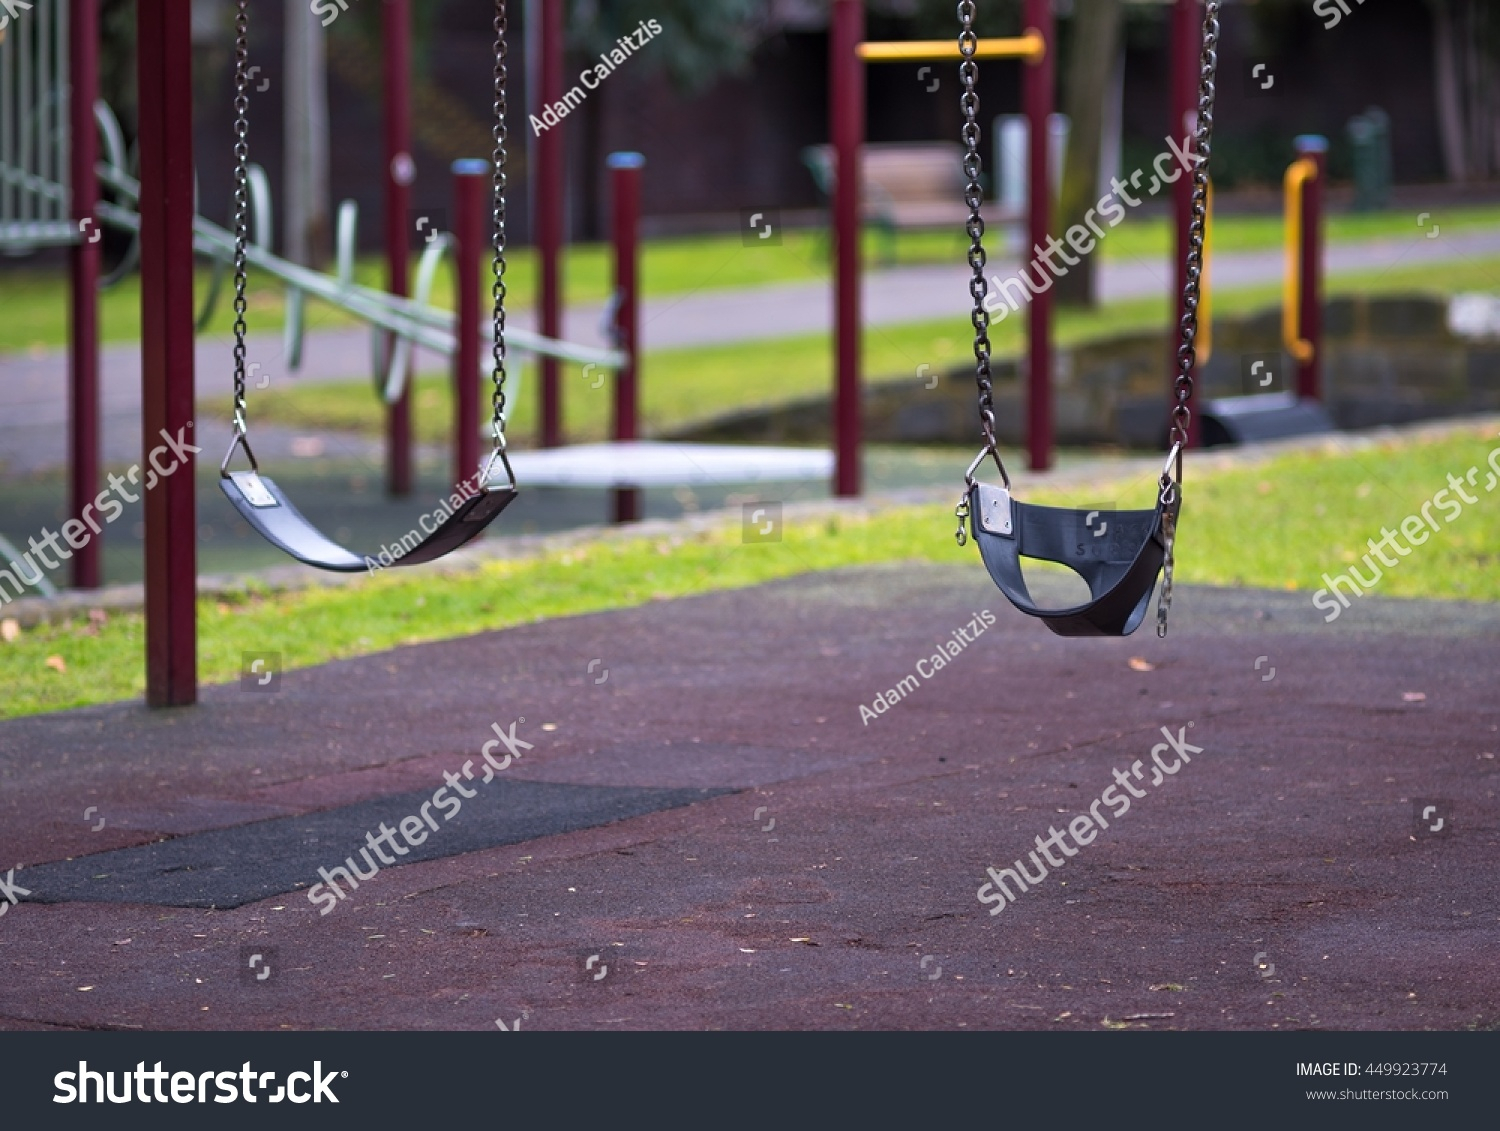 Two Childrens Playground Swing Seats Hanging Stock Photo With Regard To Swing Seats With Chains (View 10 of 25)